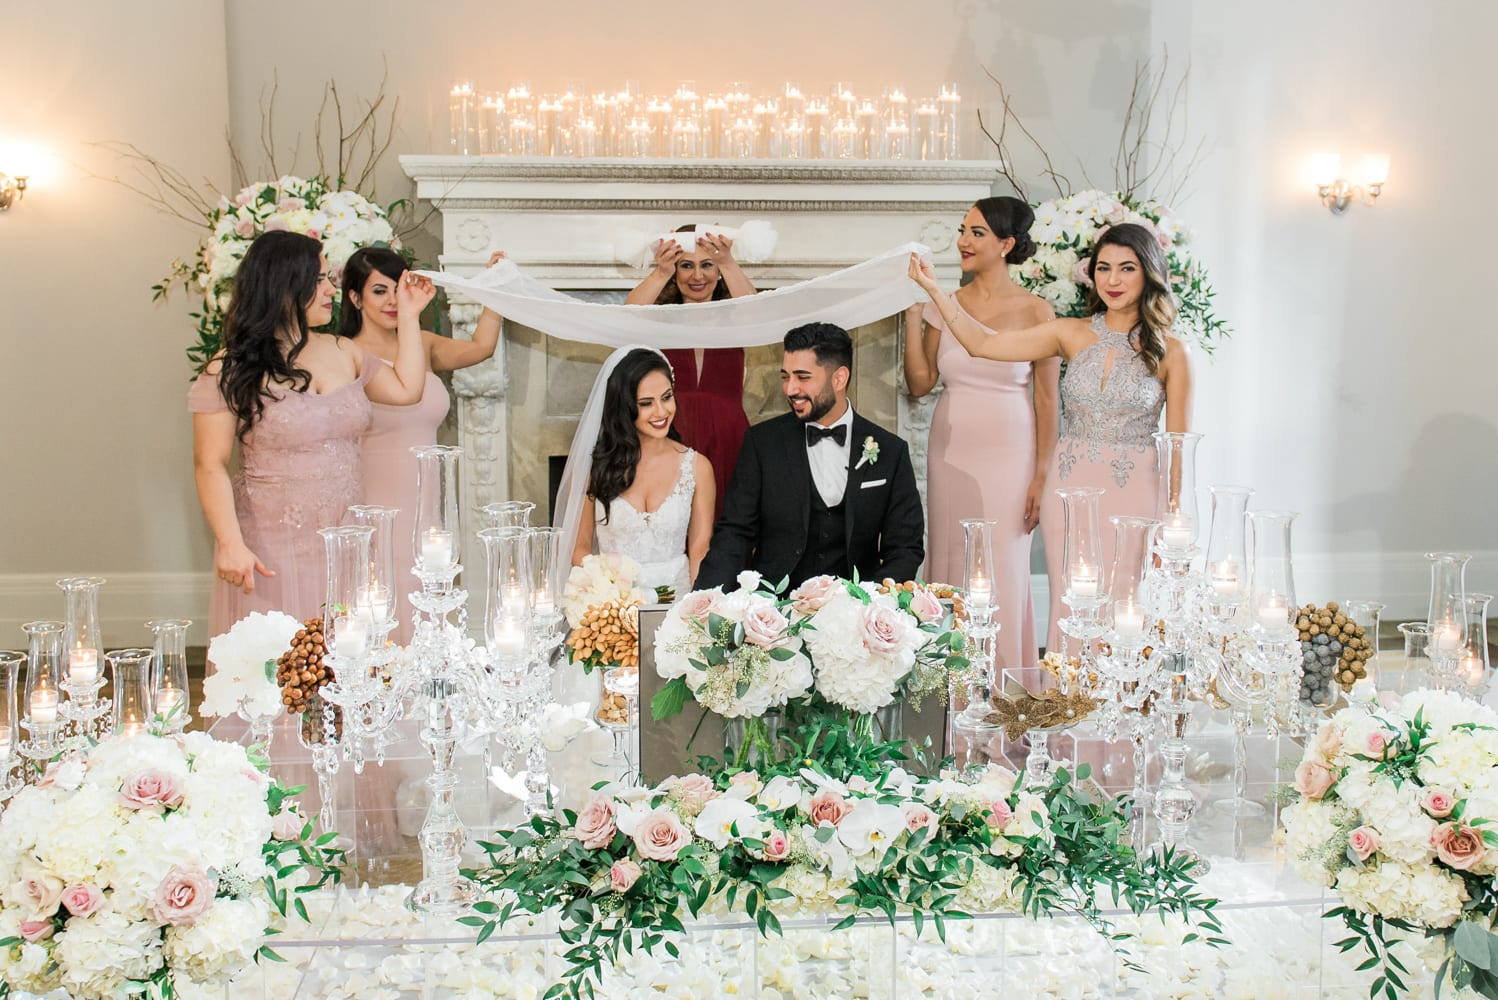 A Vintage Persian Wedding in Vancouver - Couple and sofreh